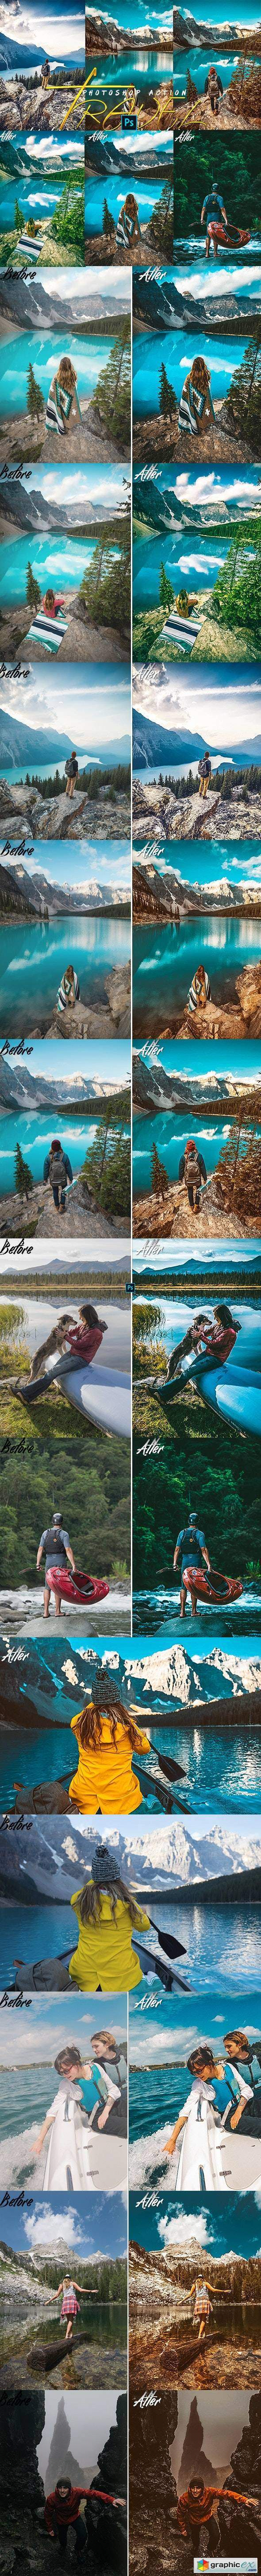 Travels Photoshop Actions